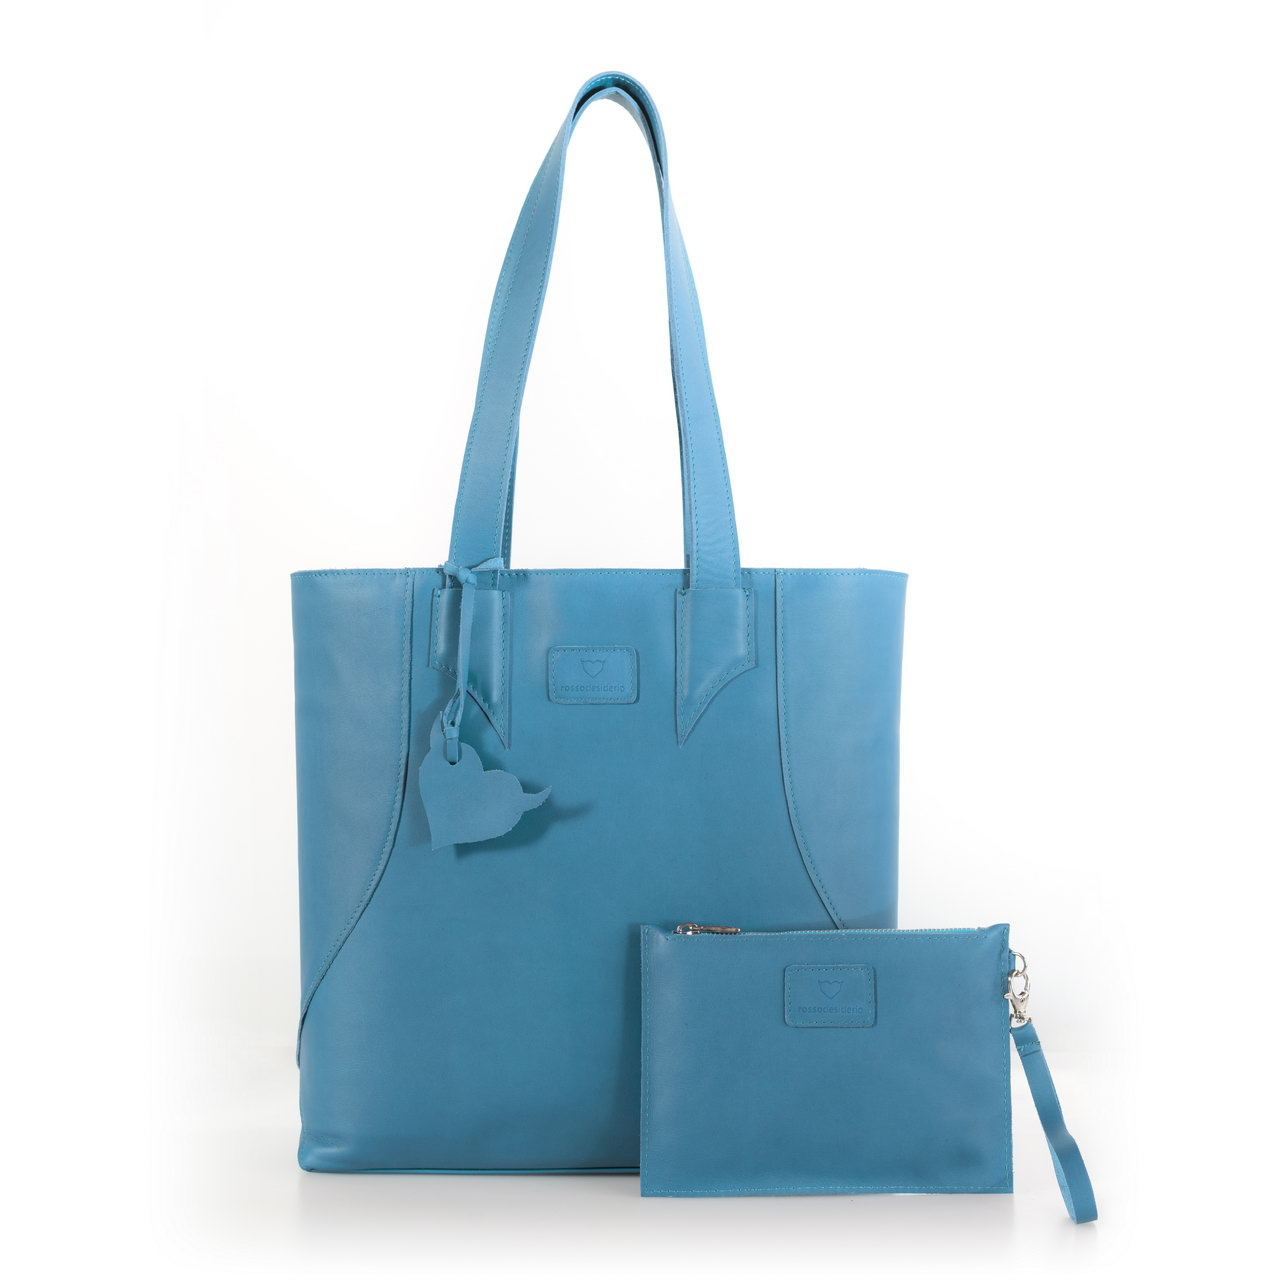 Brava Light Blue, shopper bag made with real leather